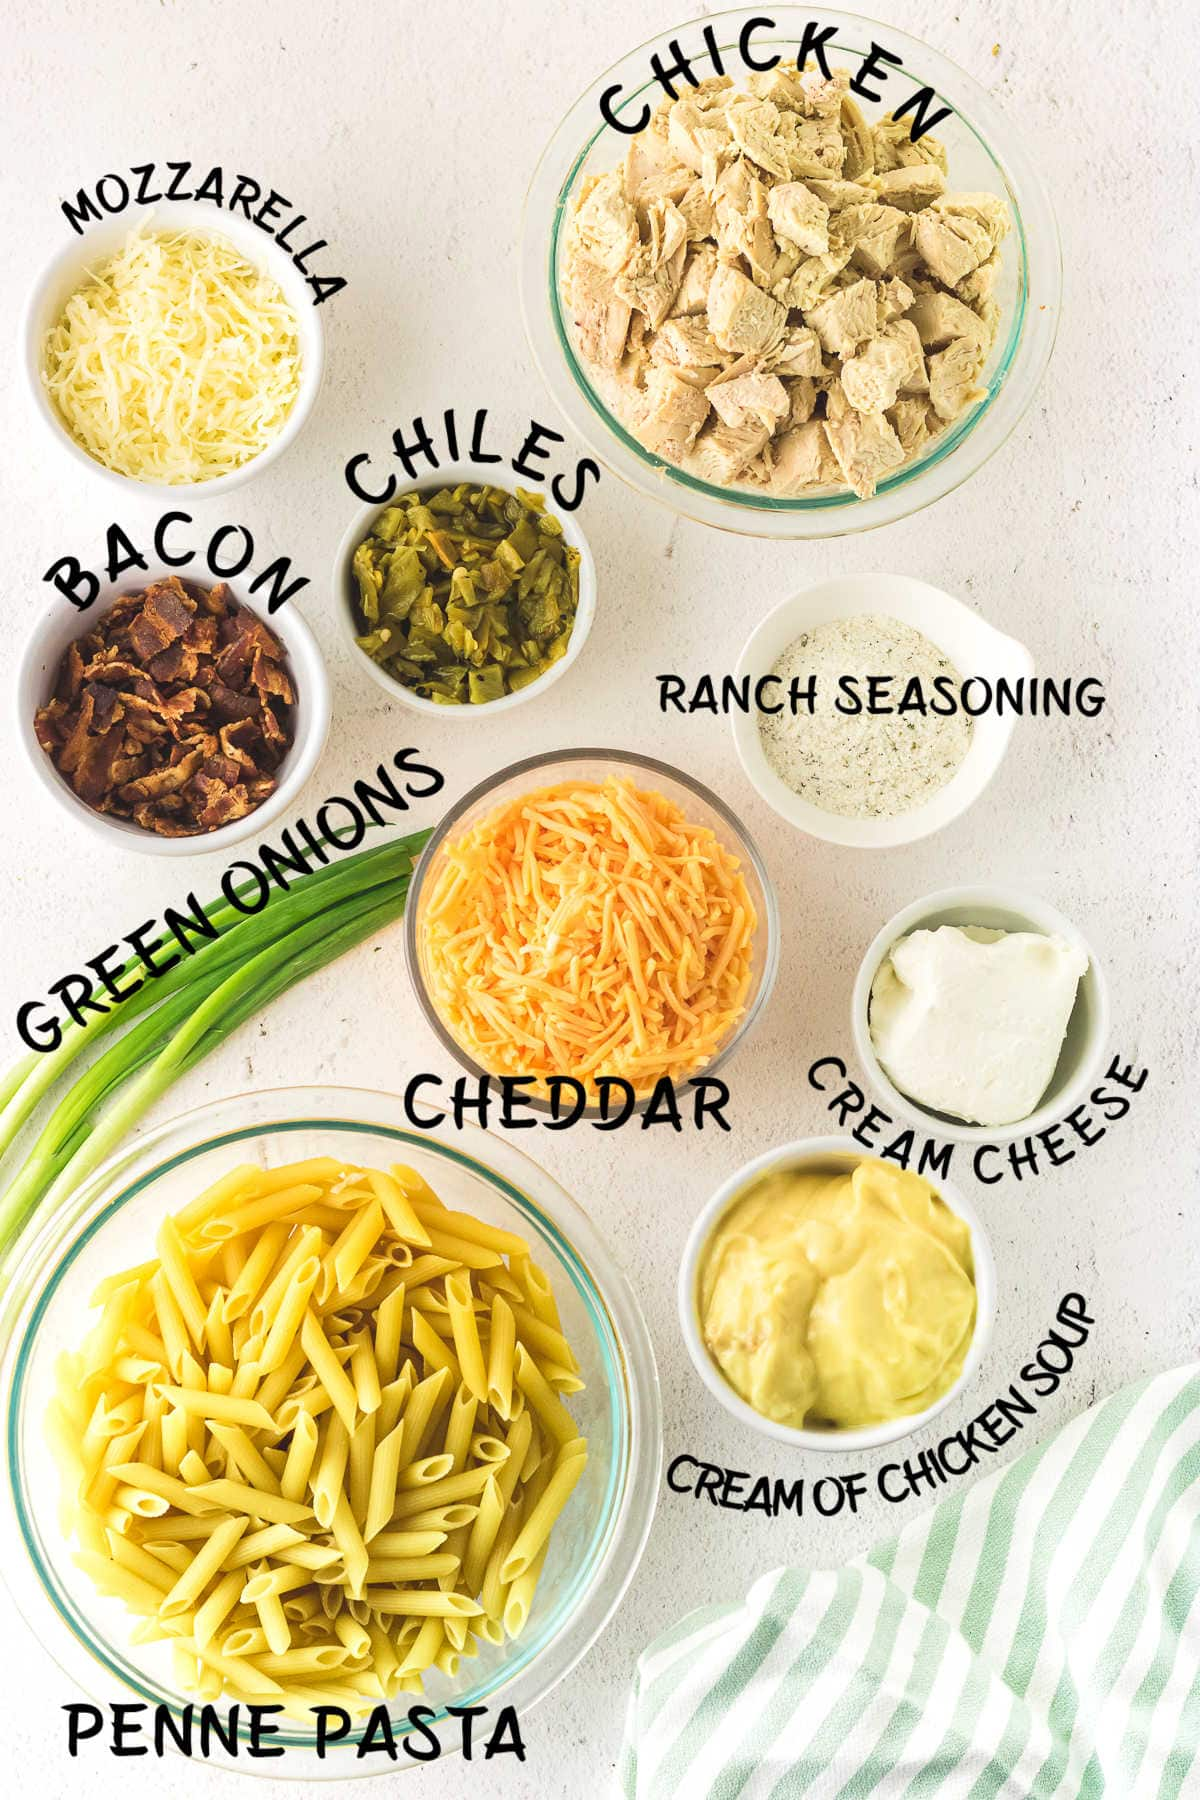 Ingredients for chicken bacon ranch casserole.